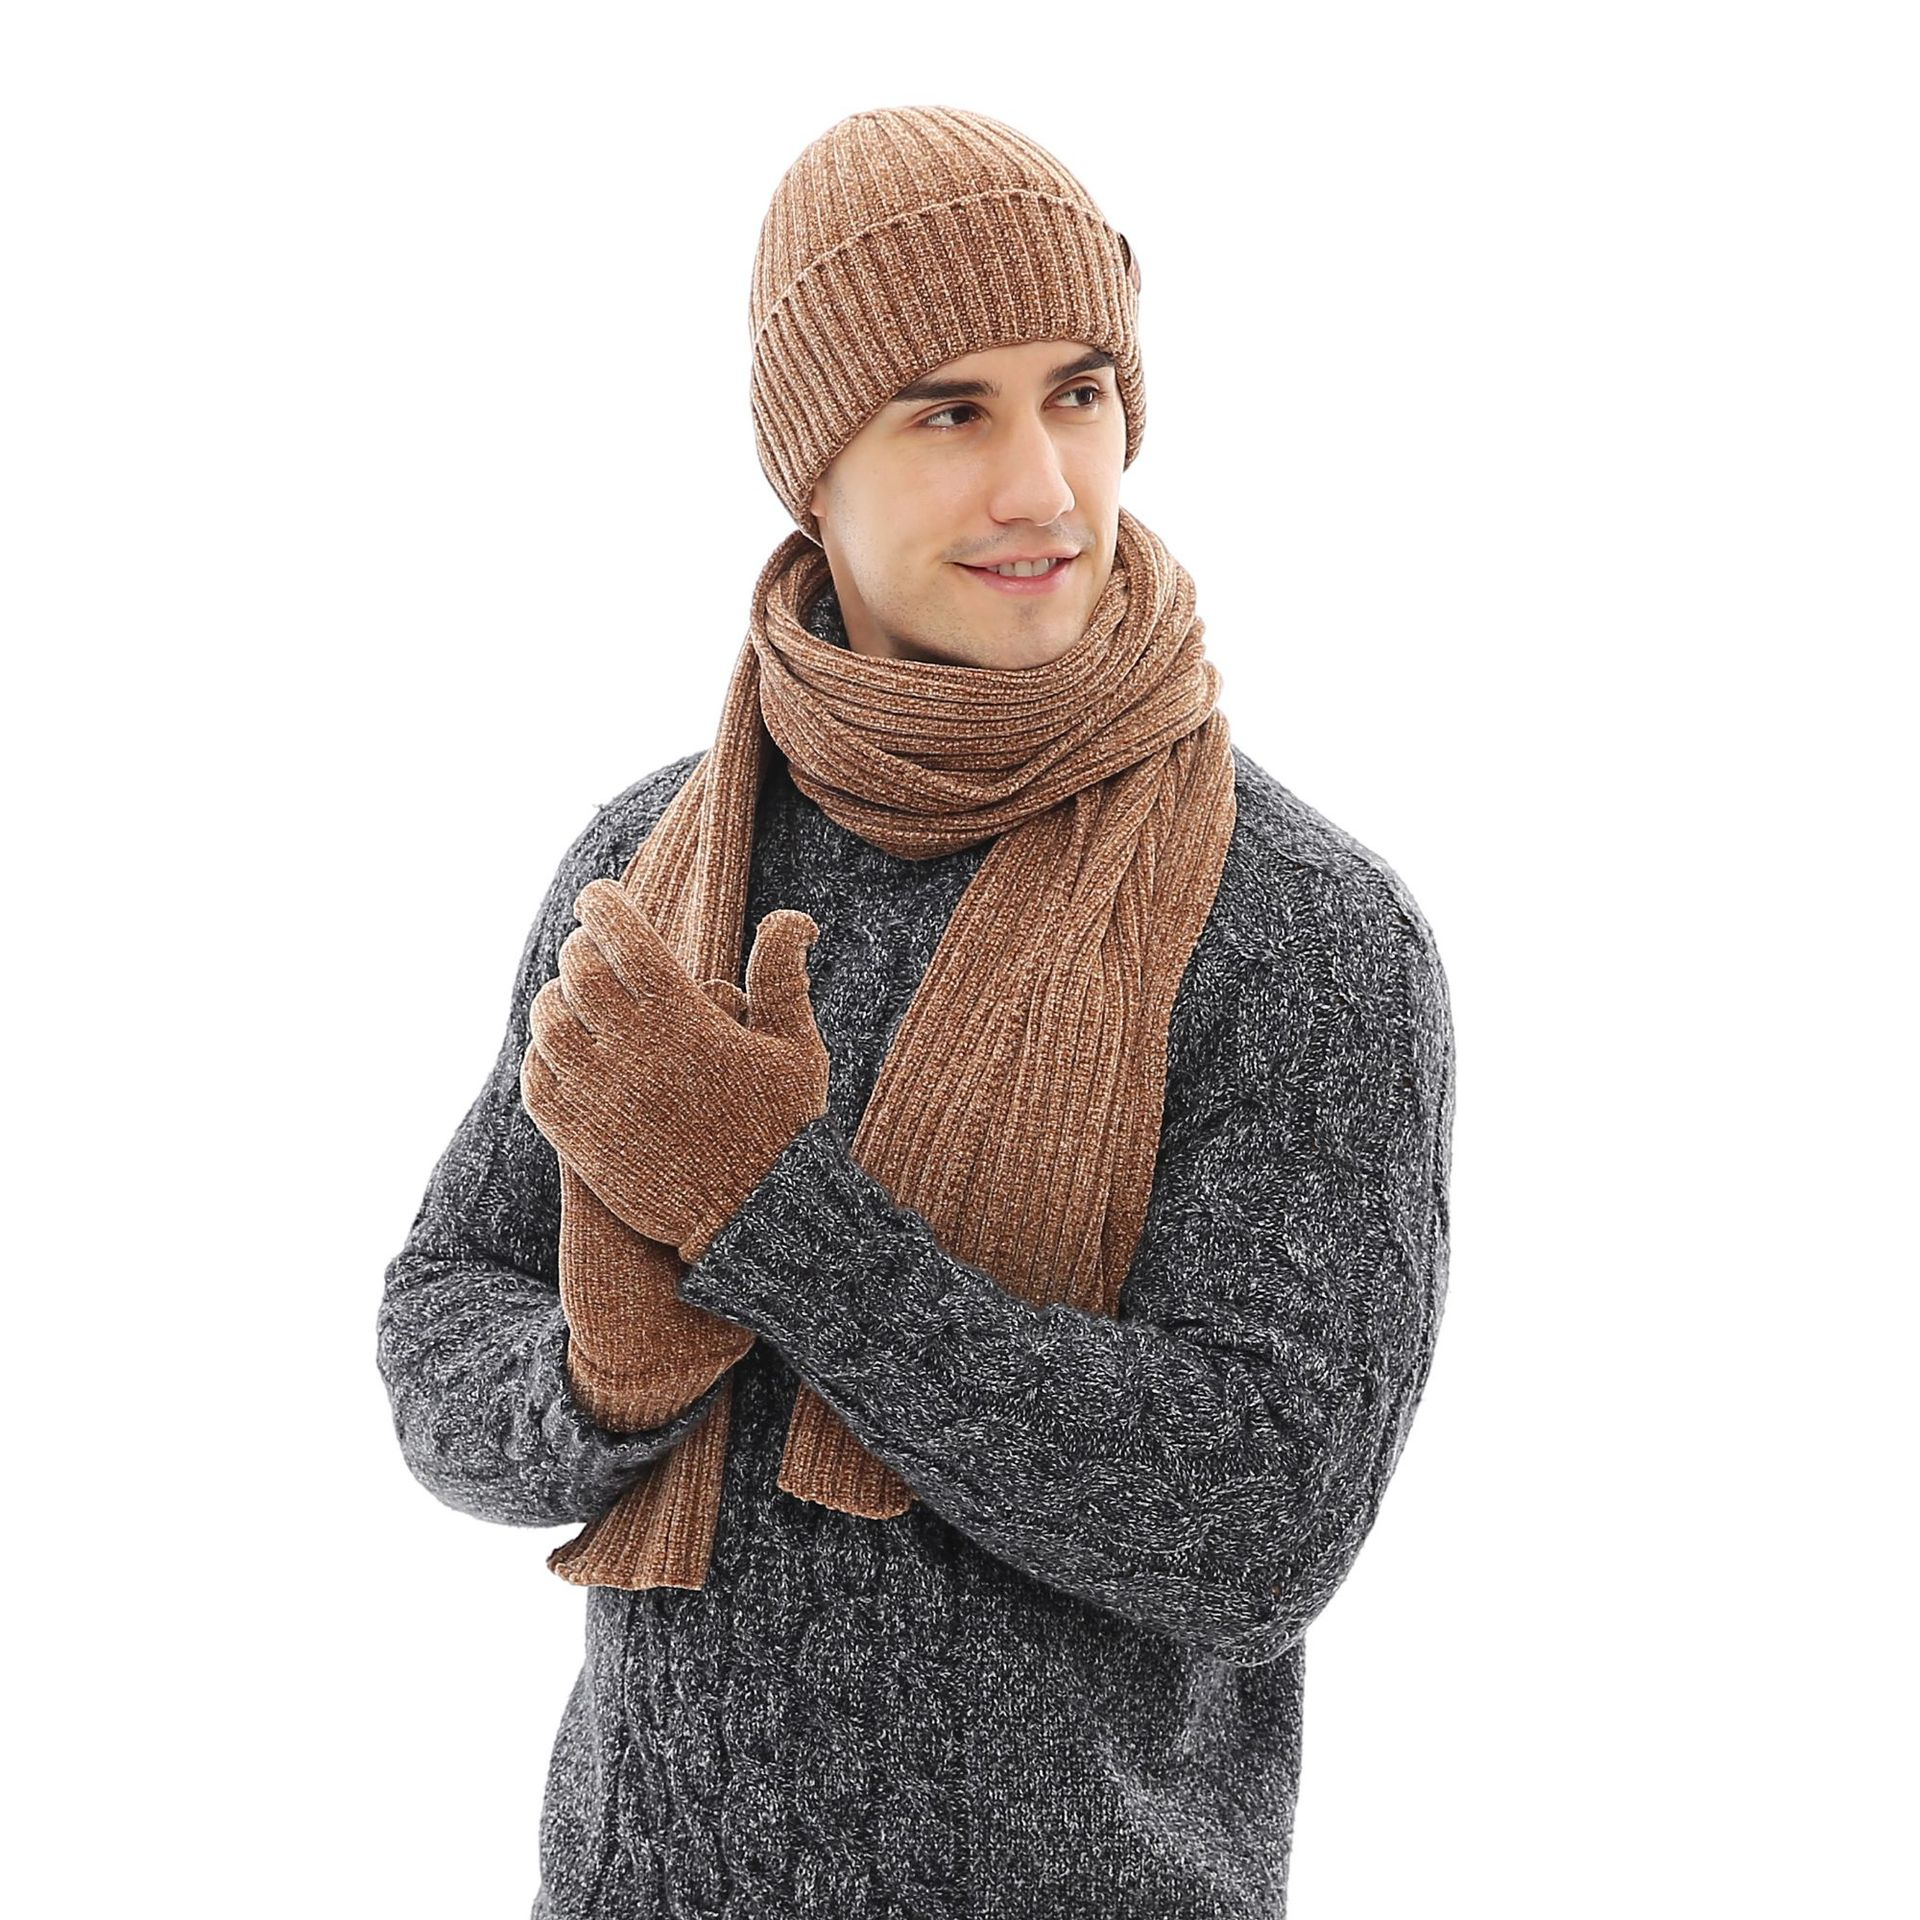 Fashion  Men's Wool Three-piece Mixed Color Knit Hat Scarf Gloves Set Scarf And Hat Set  Mink Cap Scarf  Hat Set  Scarf Hat